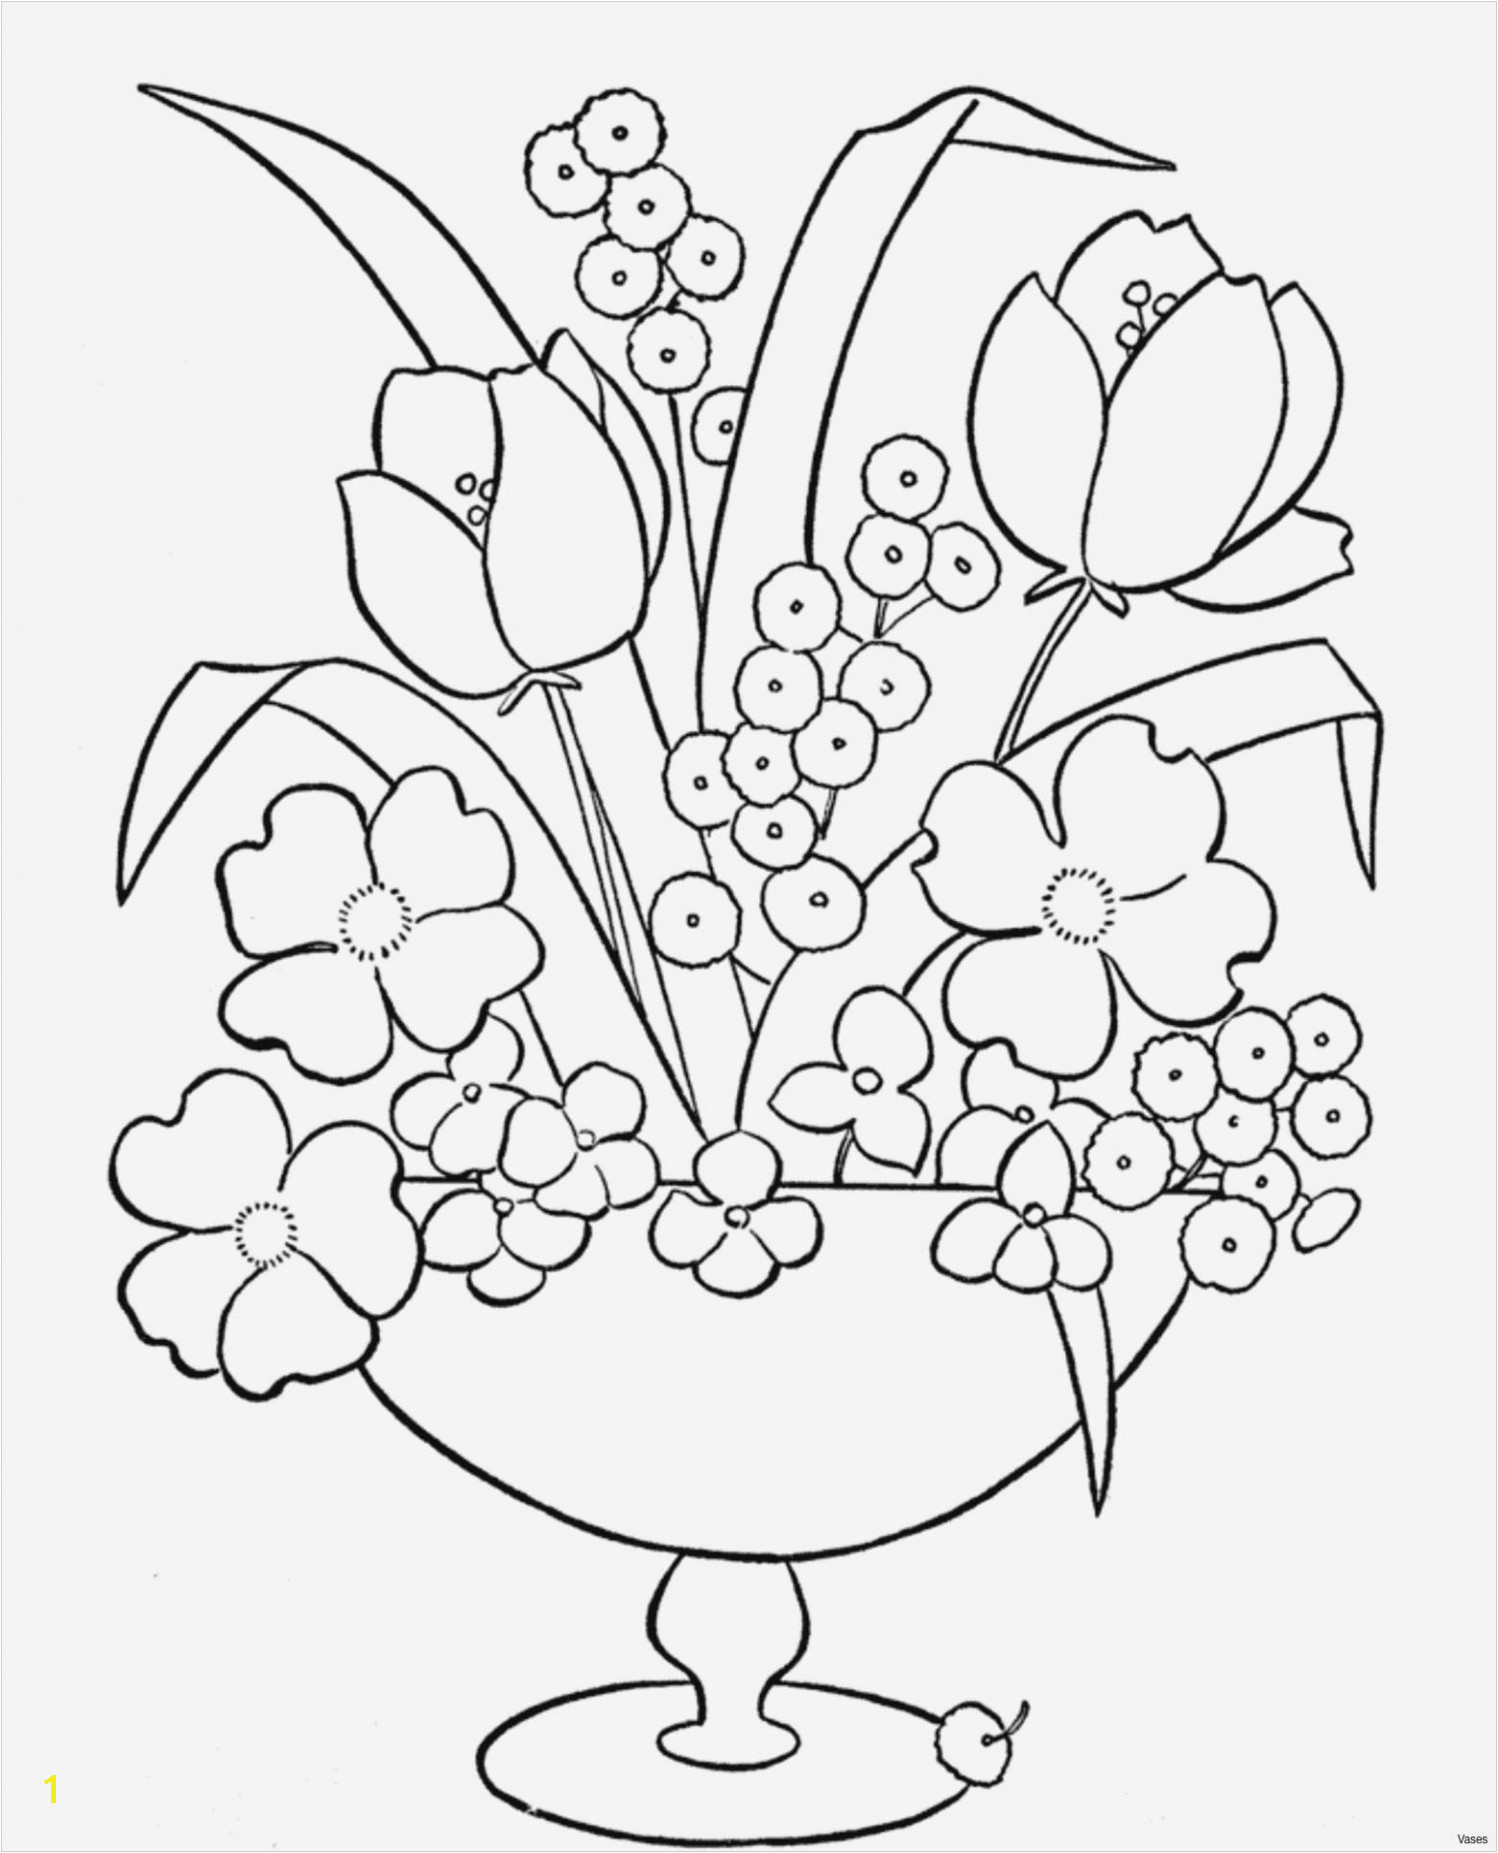 Flower Vase Coloring Cool Vases Flower Vase Coloring Page Pages Flowers In A top I 0d